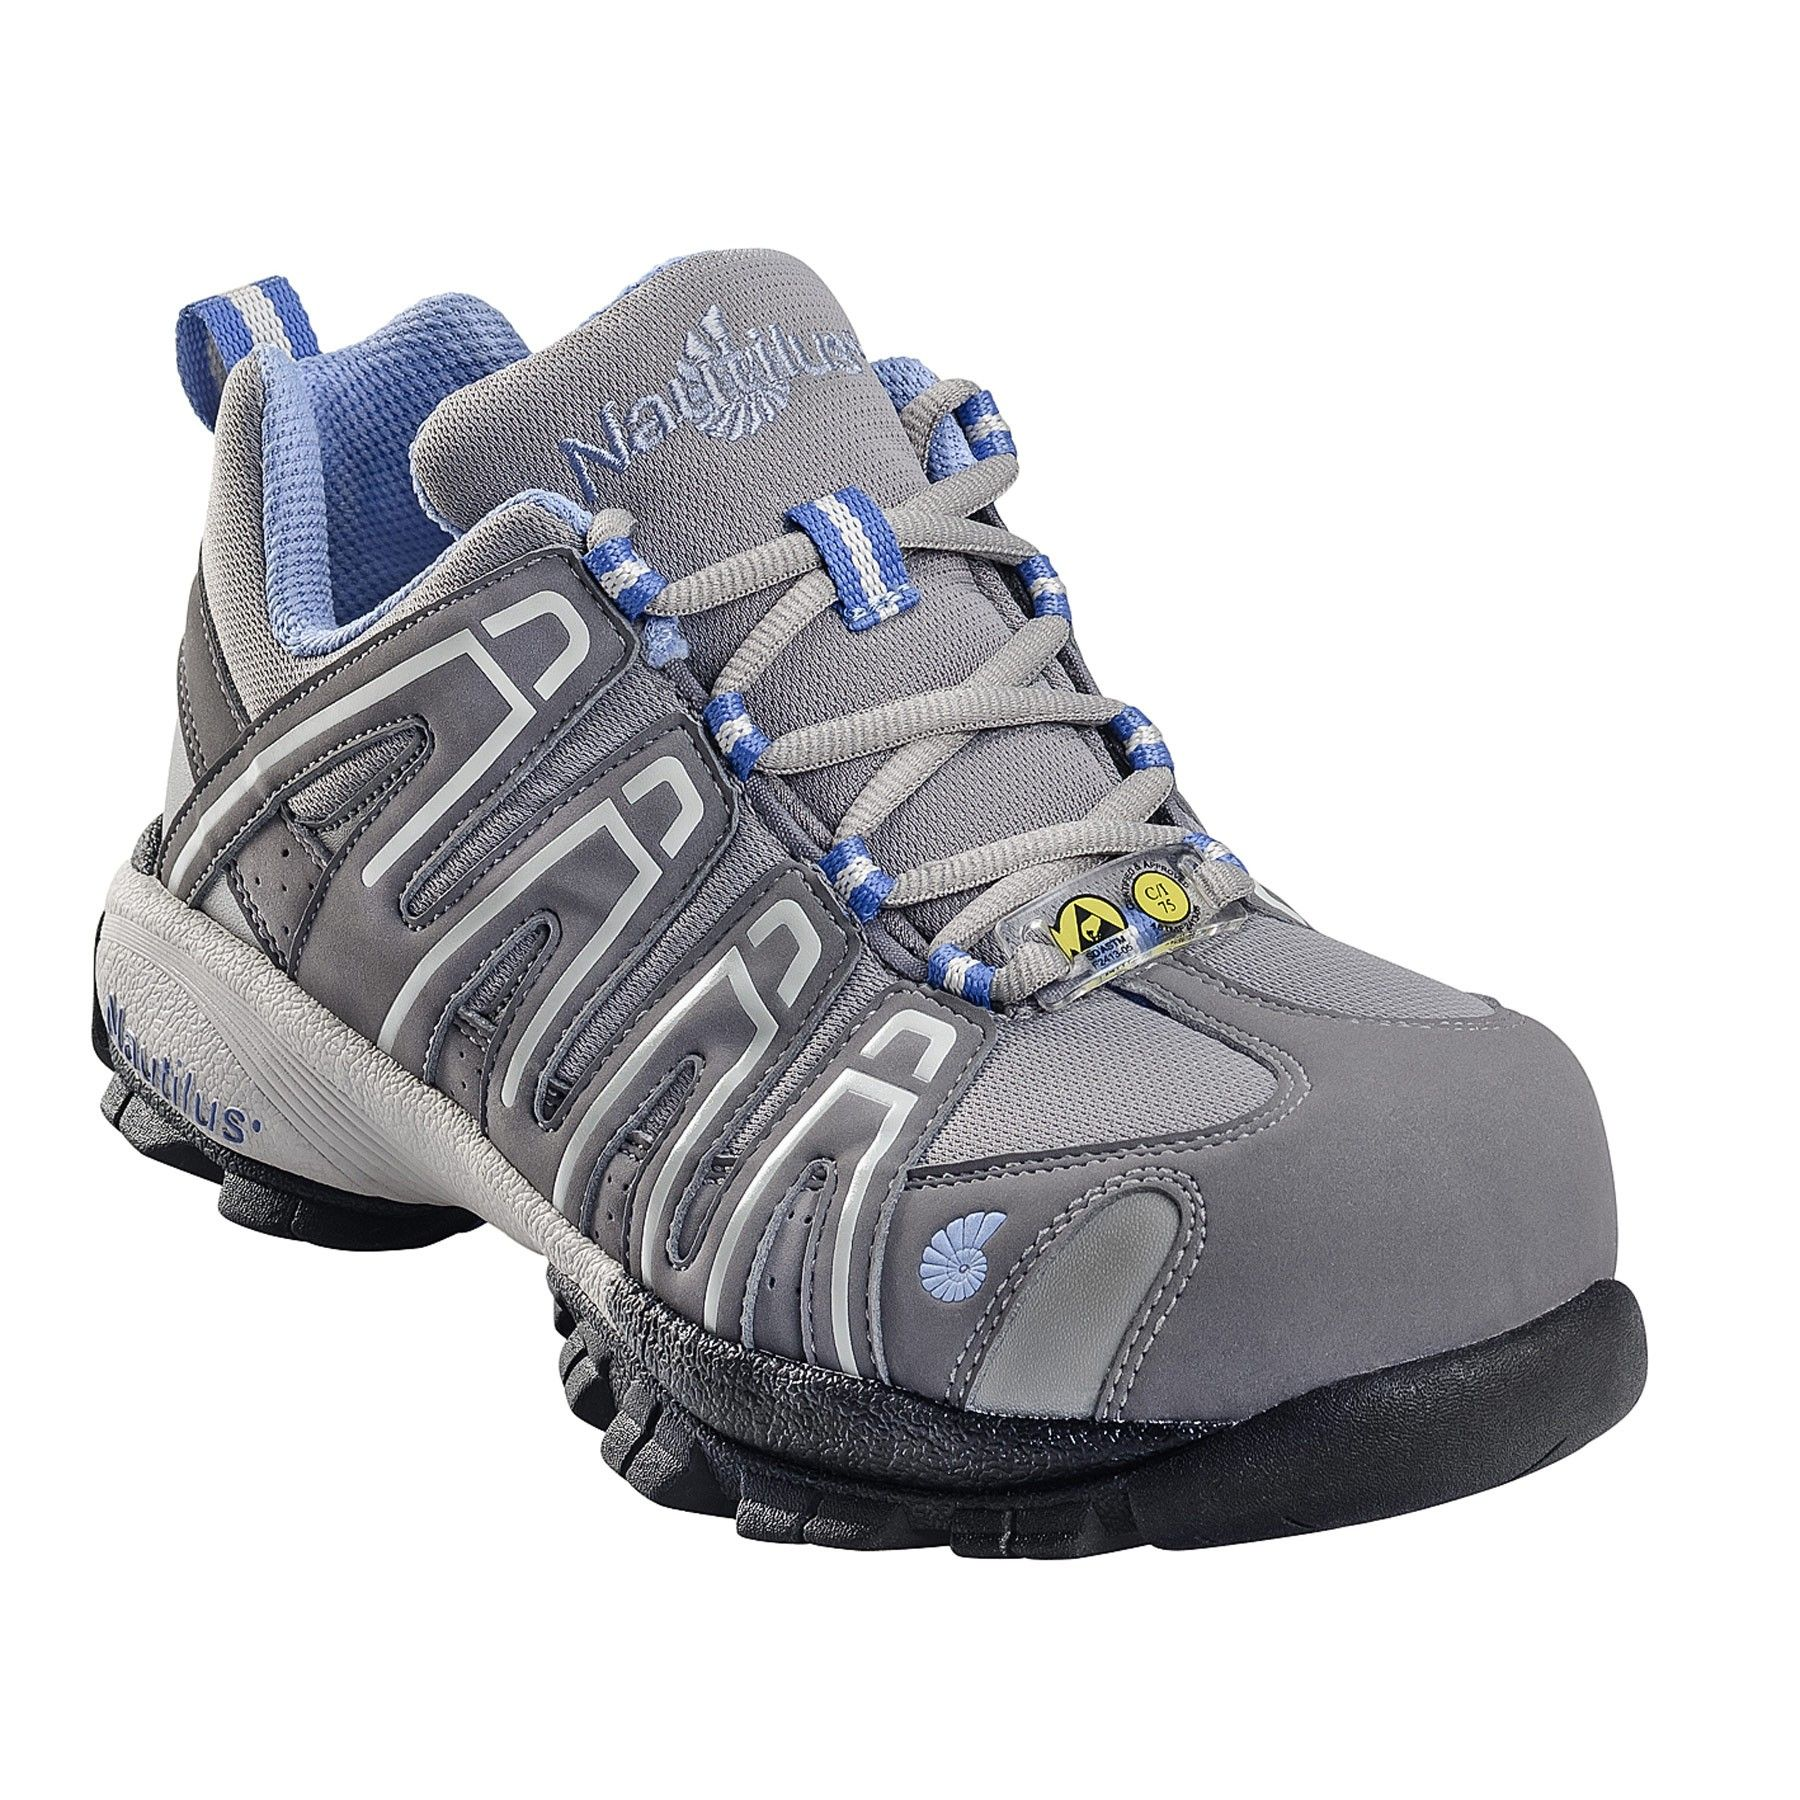 Pin on Safety Shoes